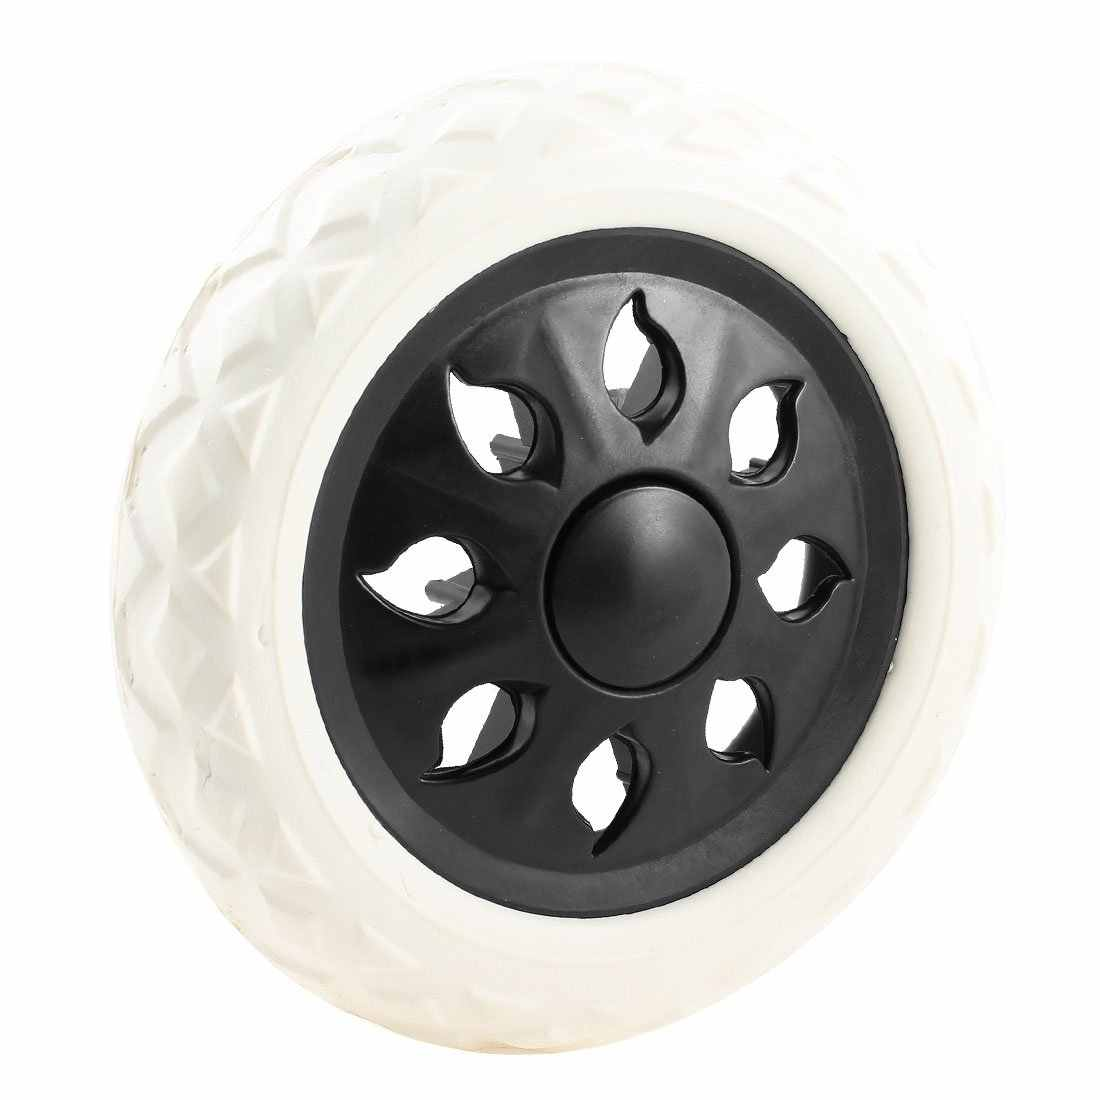 Black White Plastic Core Foam Shopping Trolley Cartwheel Casters